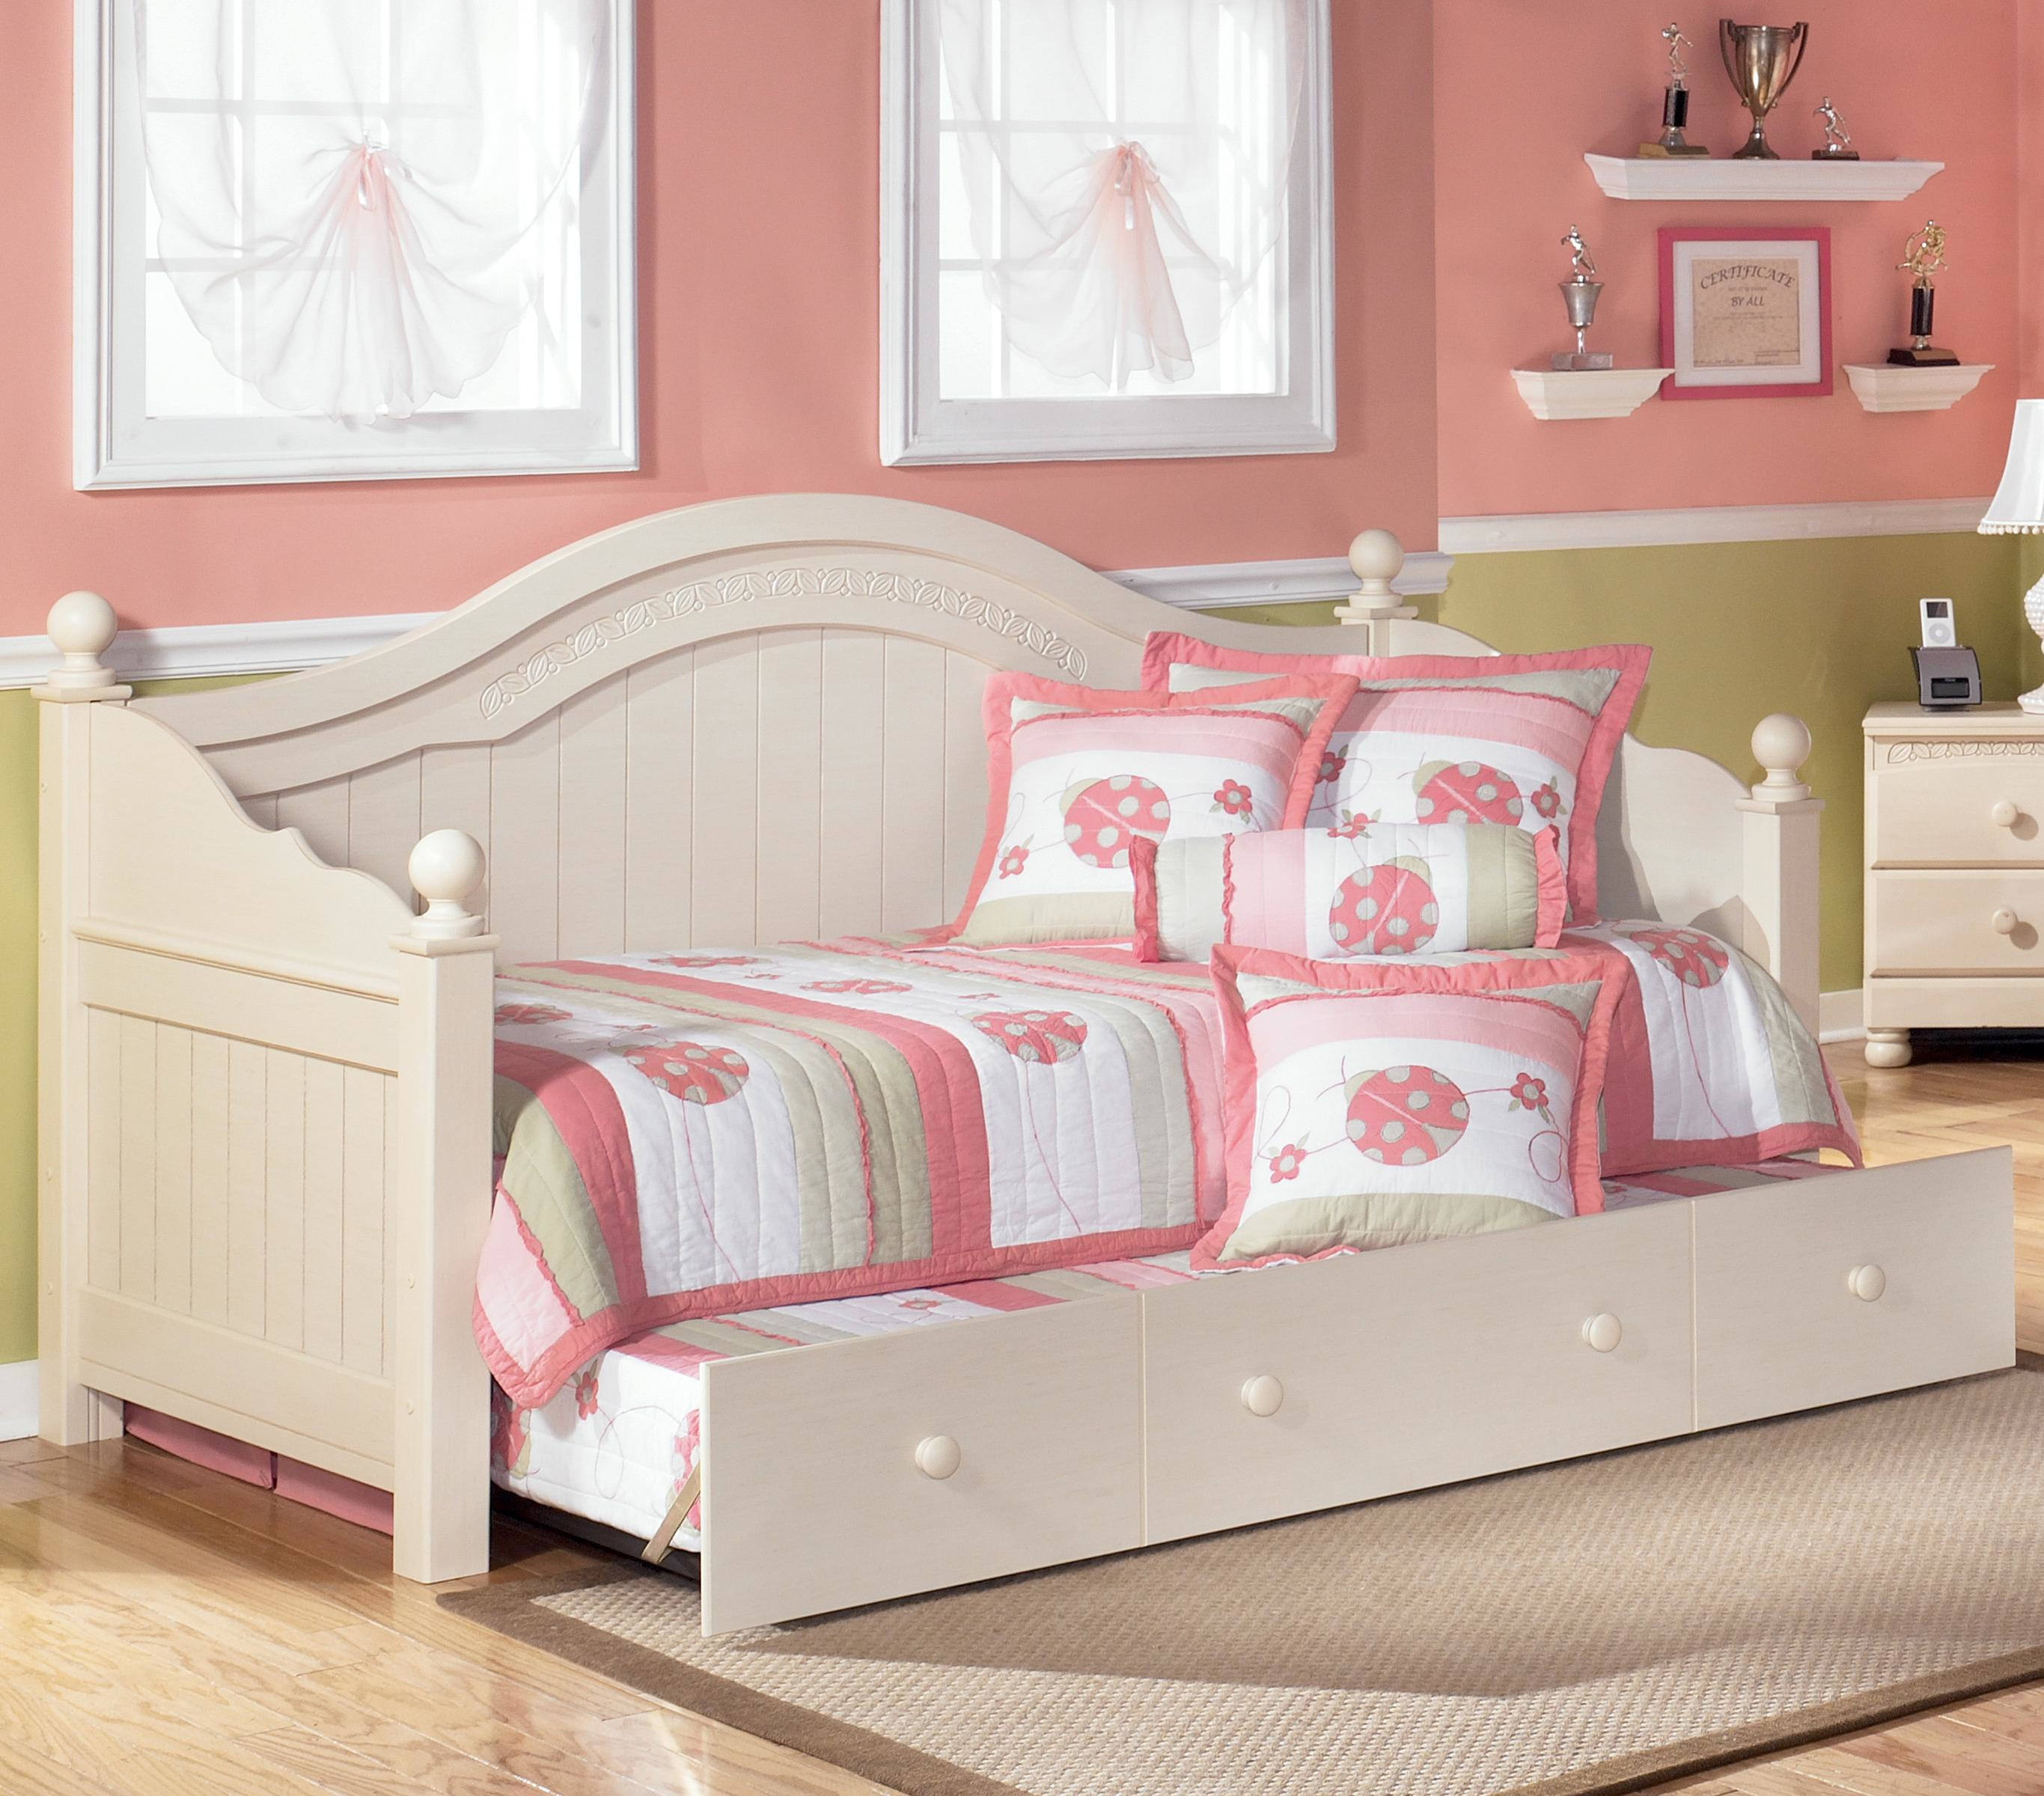 Full Size Trundle Beds | Full Size Daybed with Trundle | Full Size Daybed with Pop Up Trundle